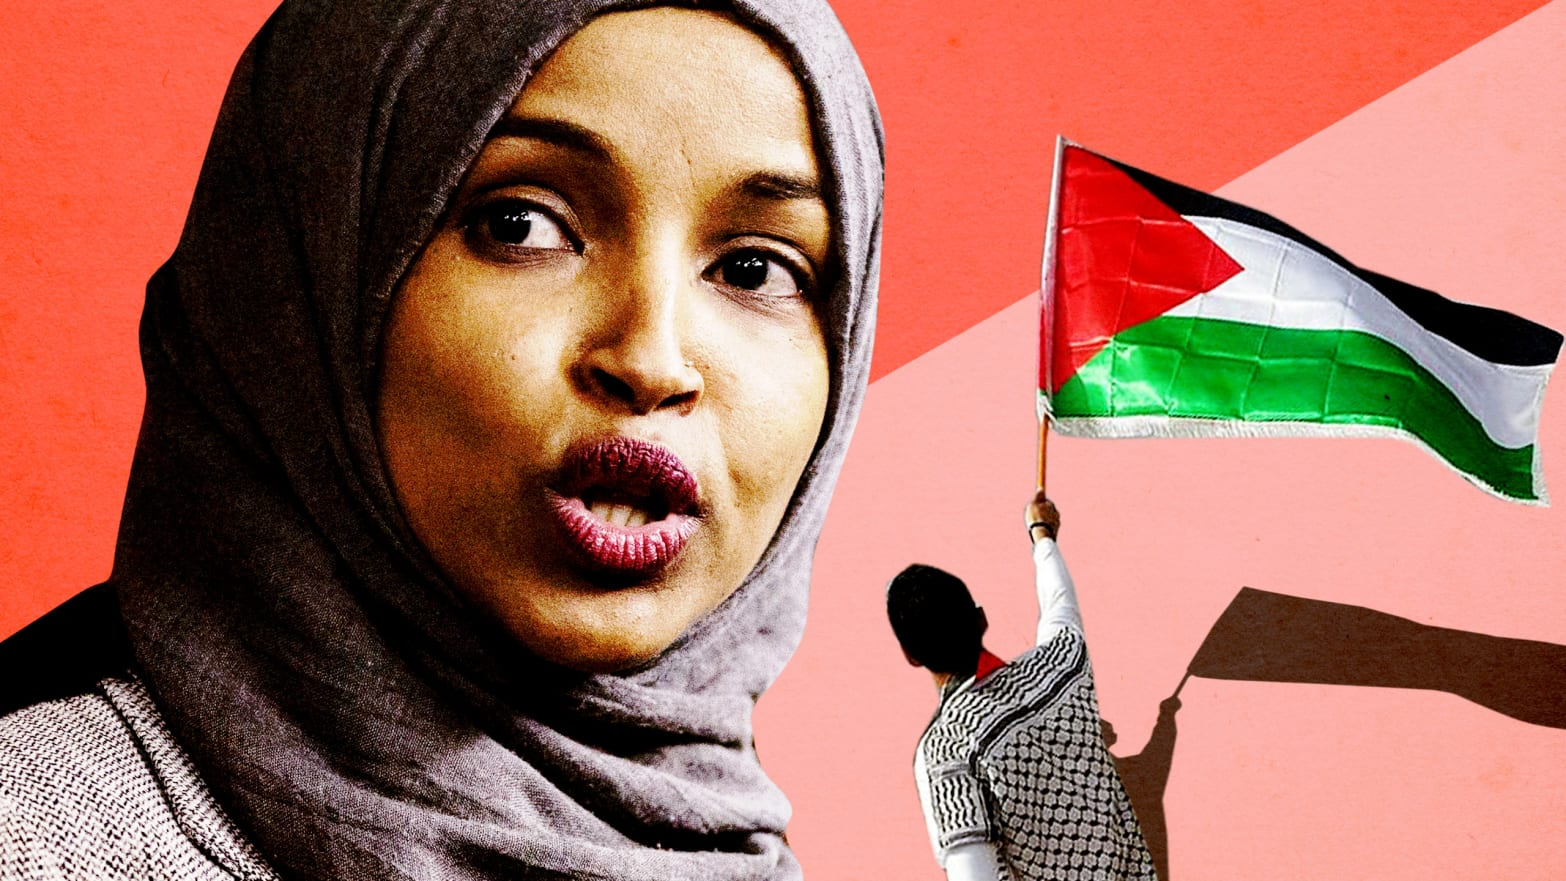 Ilhan Omar Apologized. Can We Talk About the Palestinians Now?